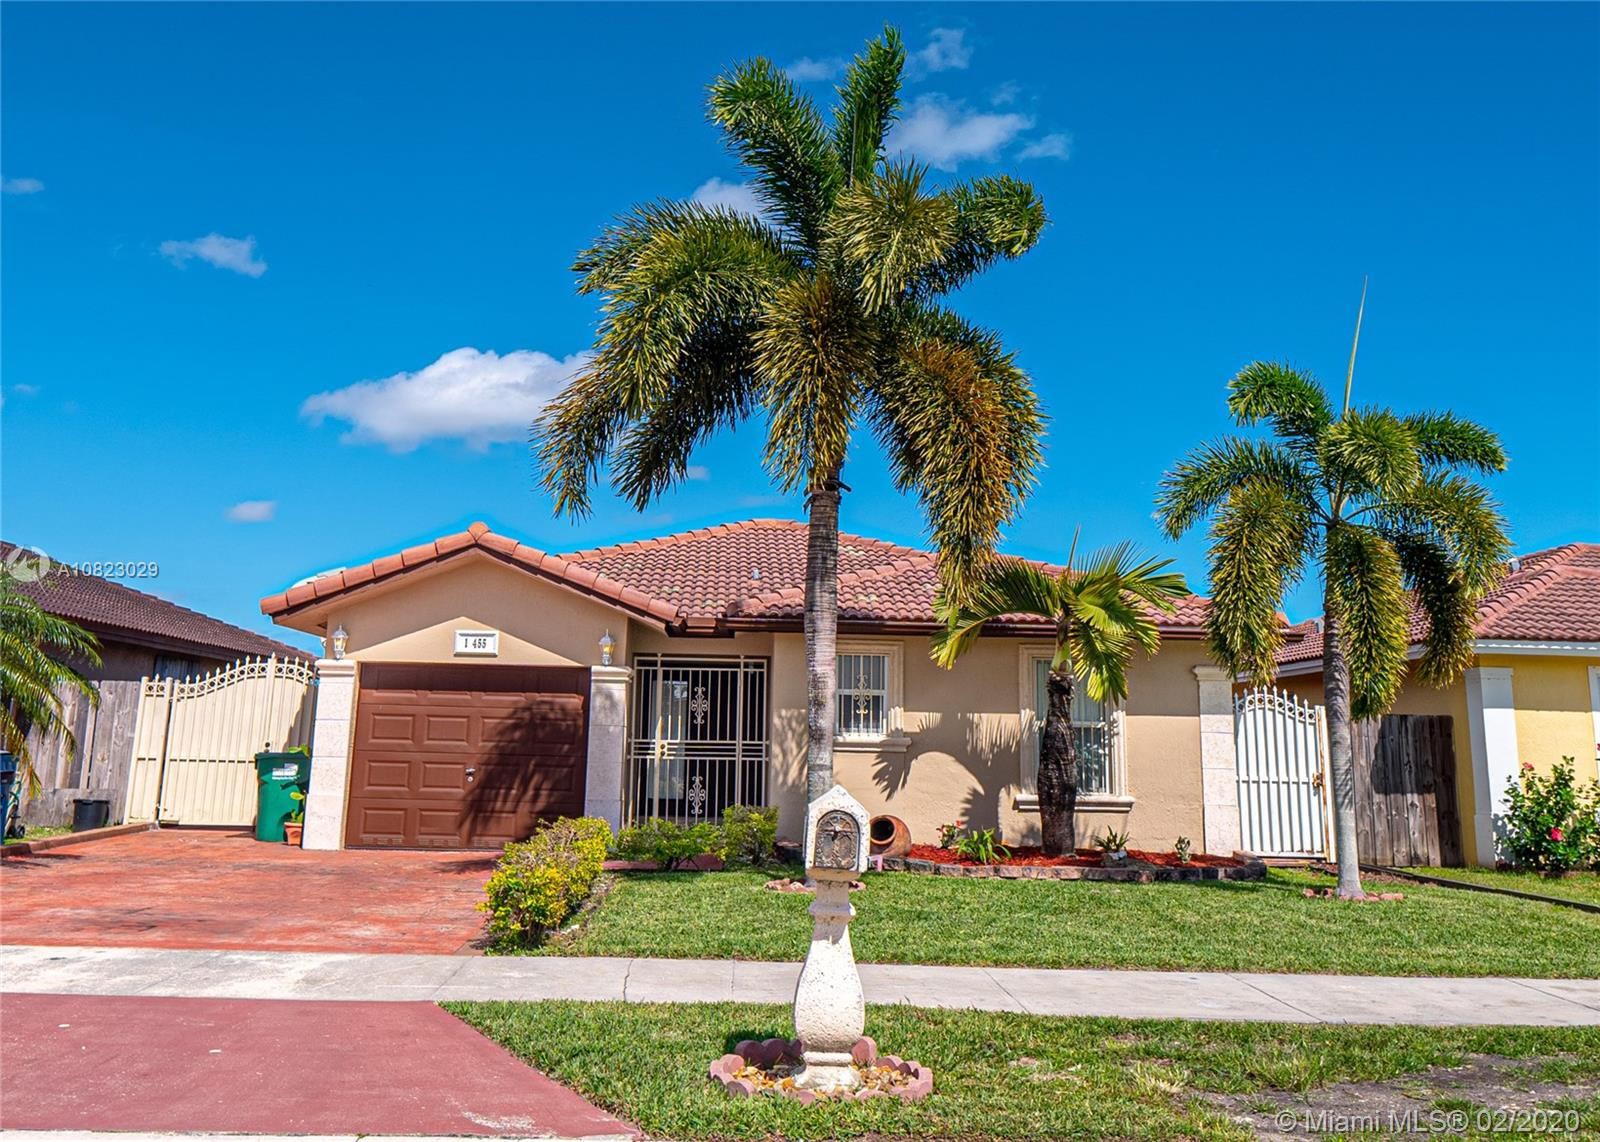 13455 SW 278th Ter, Homestead, Florida 33032, 3 Bedrooms Bedrooms, ,2 BathroomsBathrooms,Residential,For Sale,13455 SW 278th Ter,A10823029